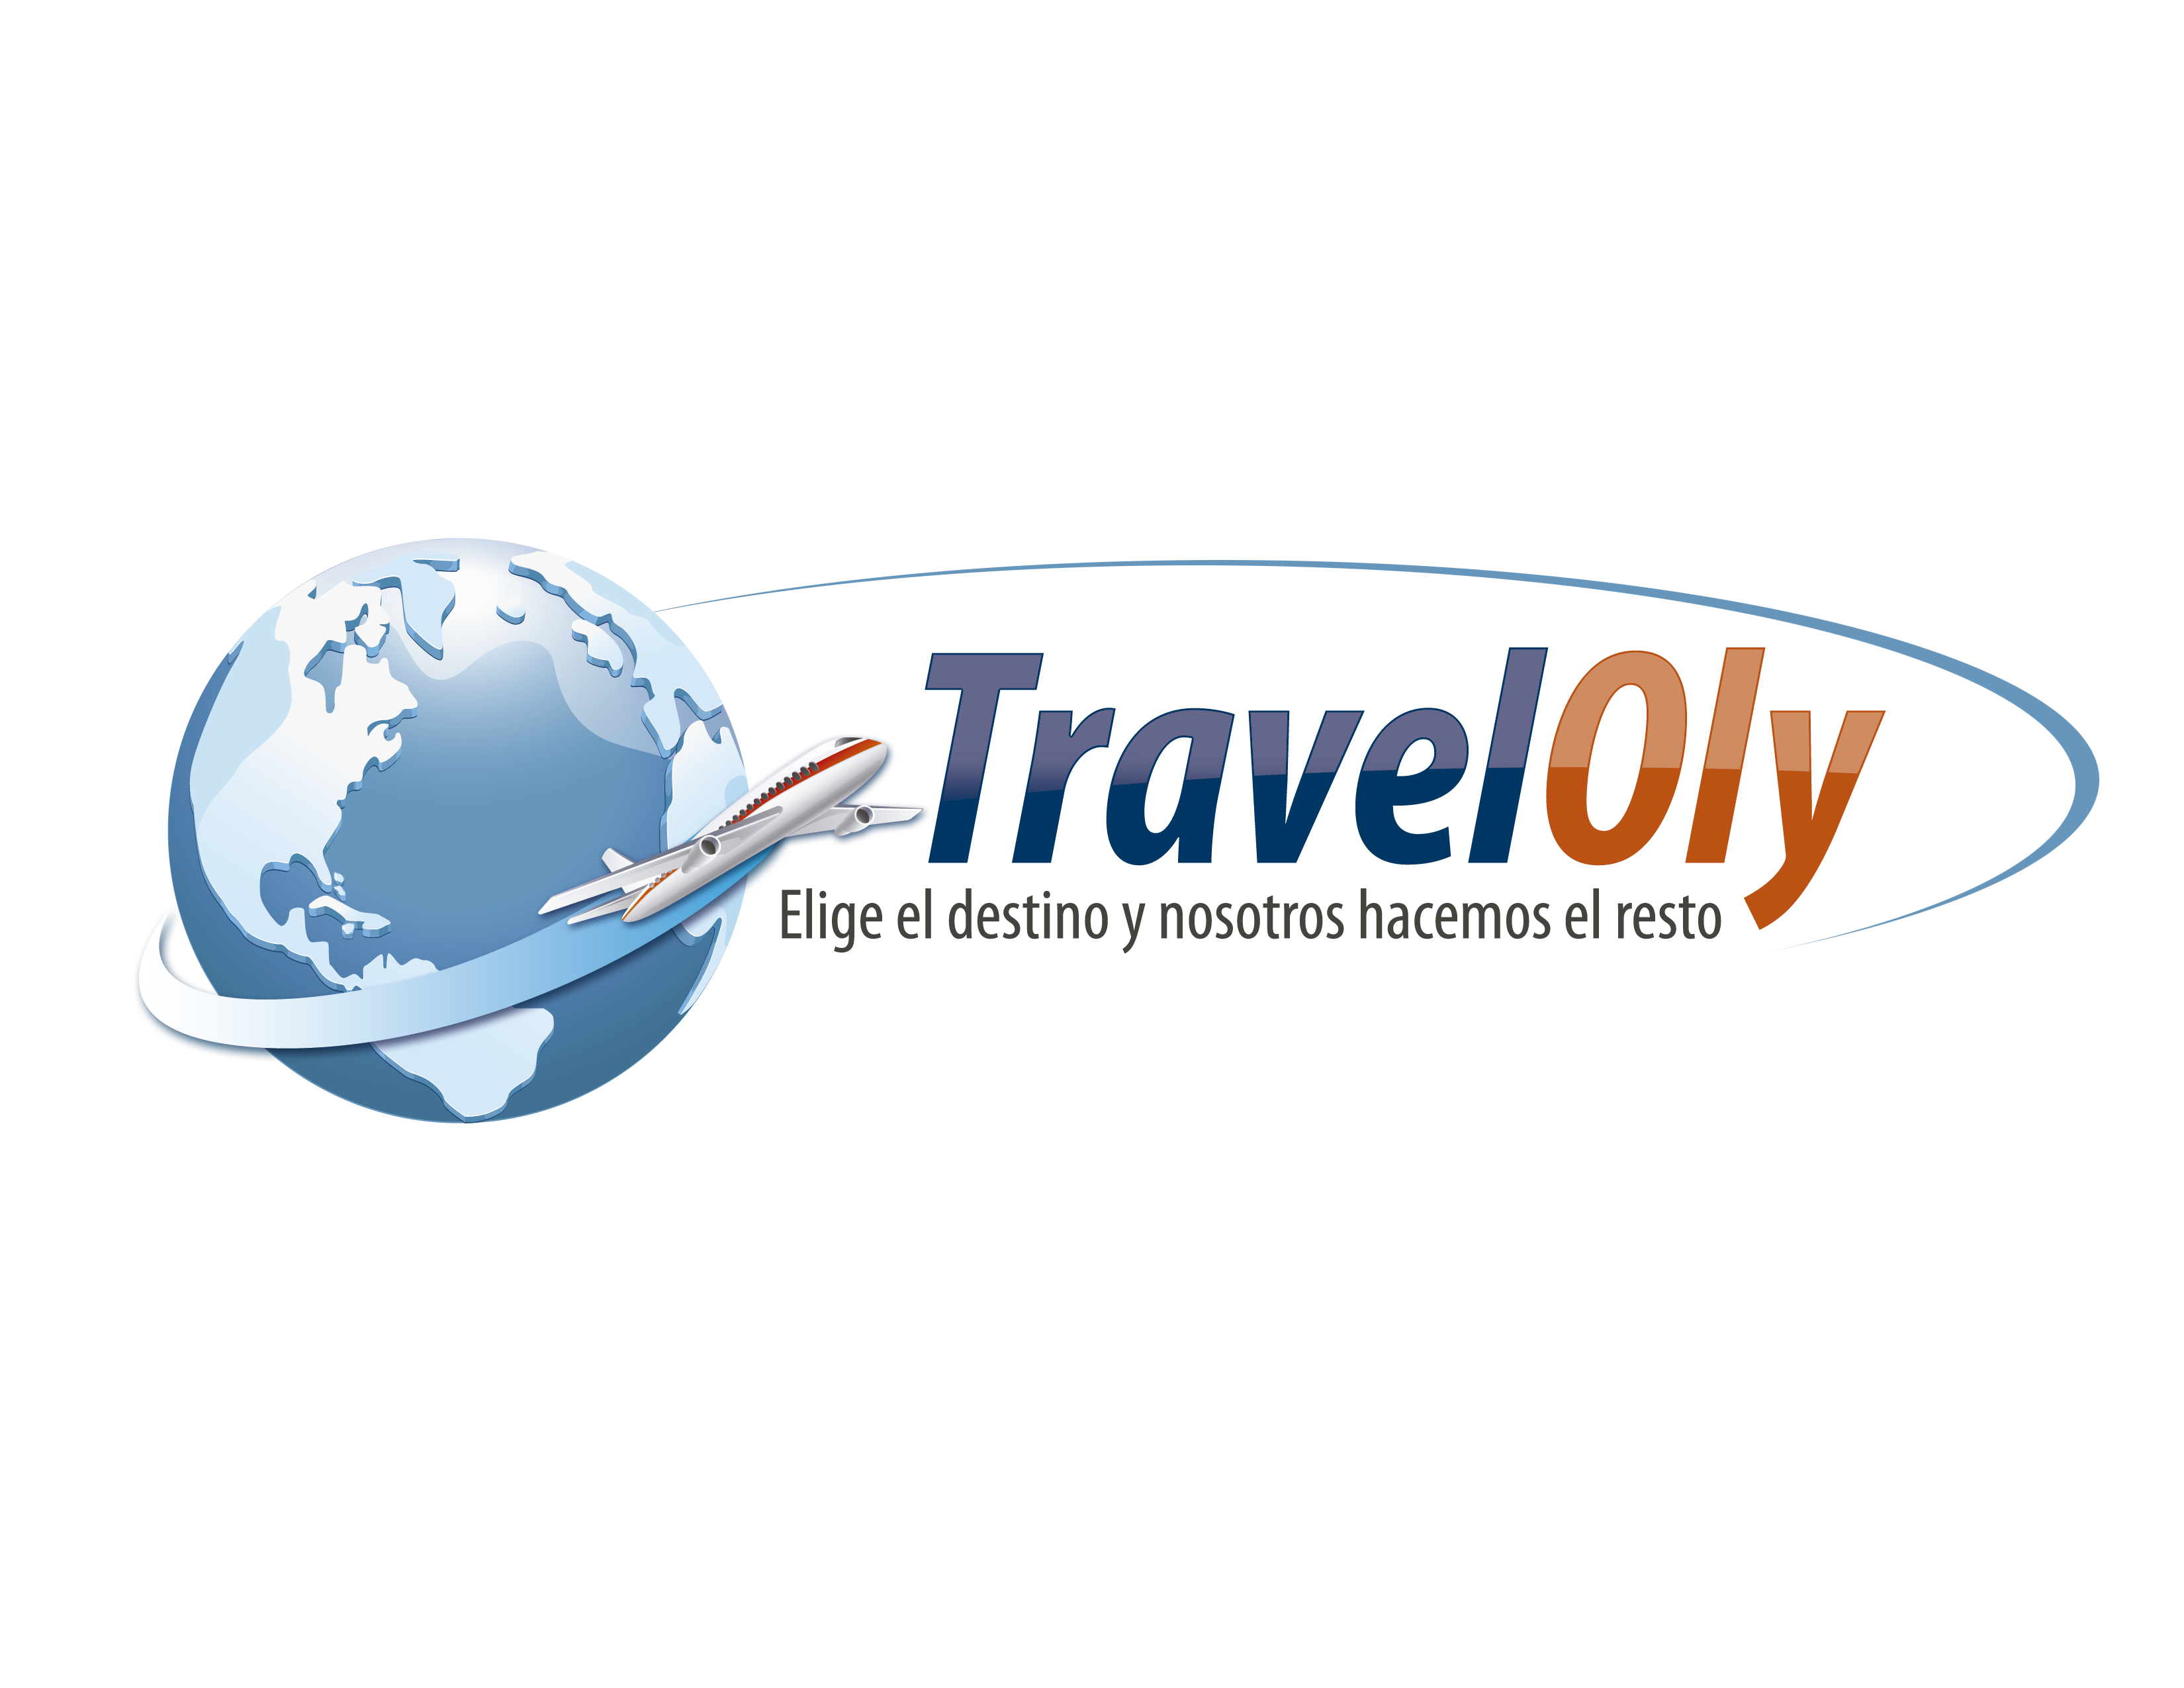 Travel Oly